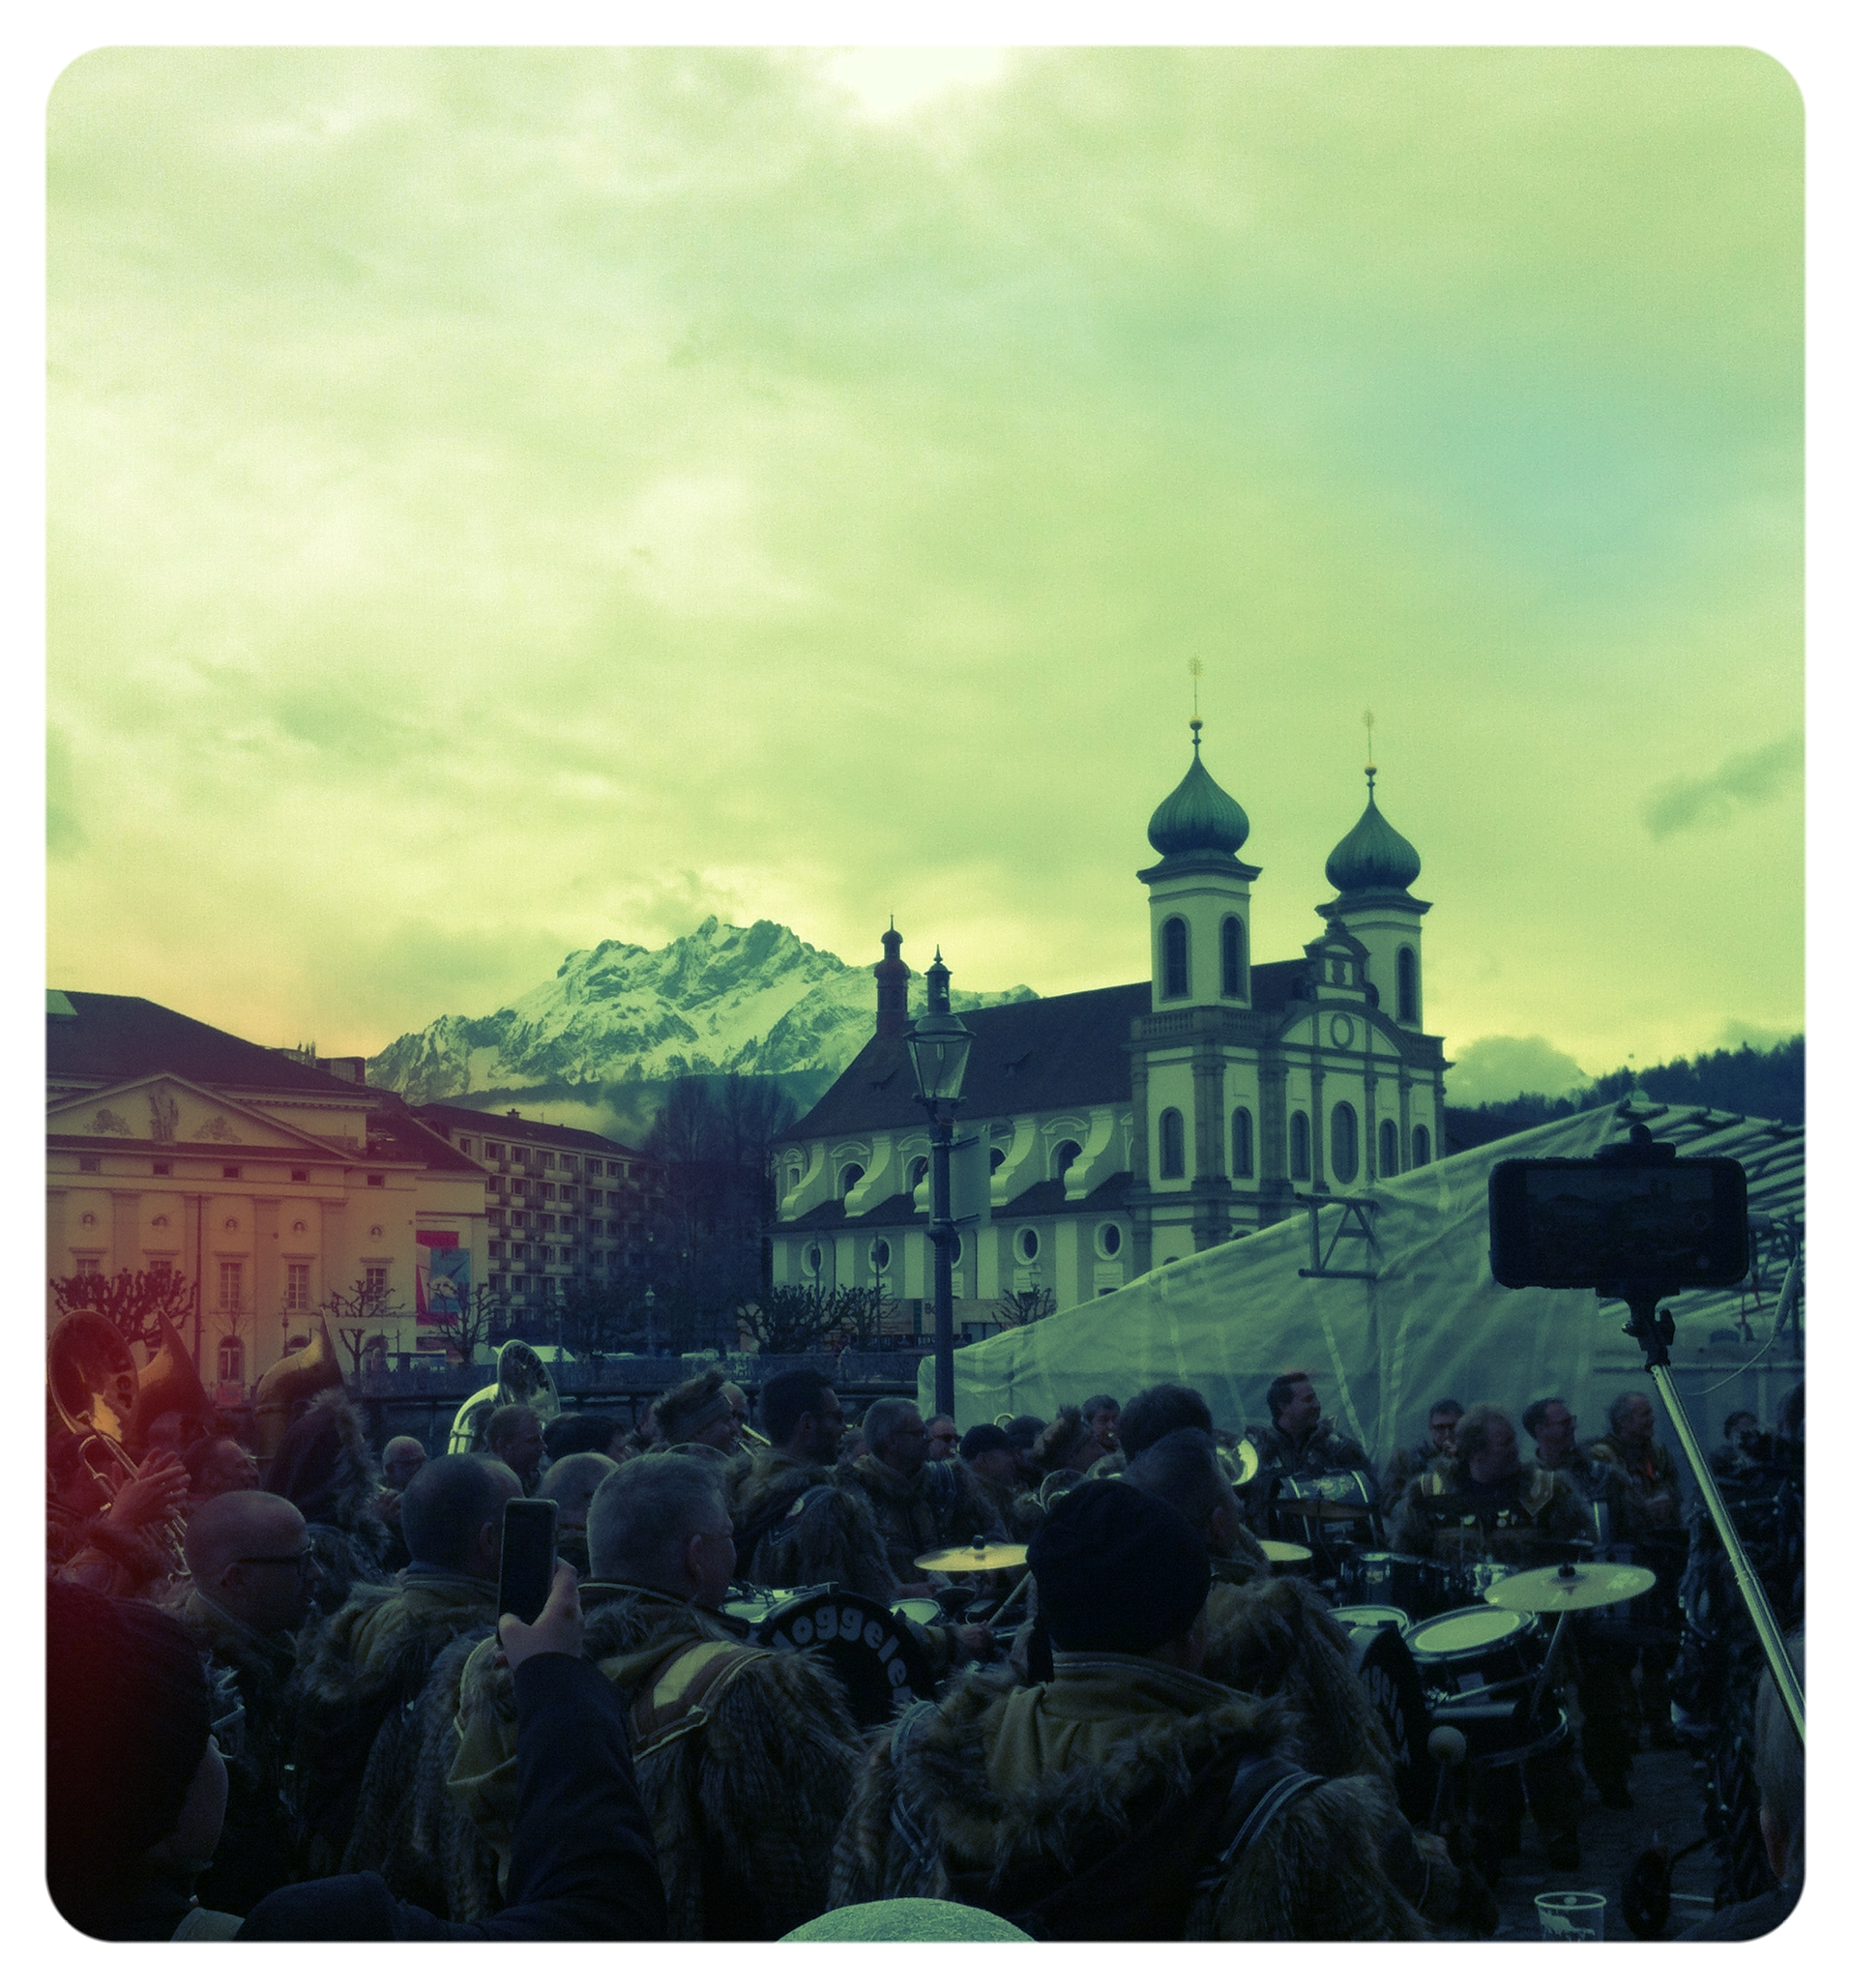 Mount_Pilatus_players_and_people_in_Luzern